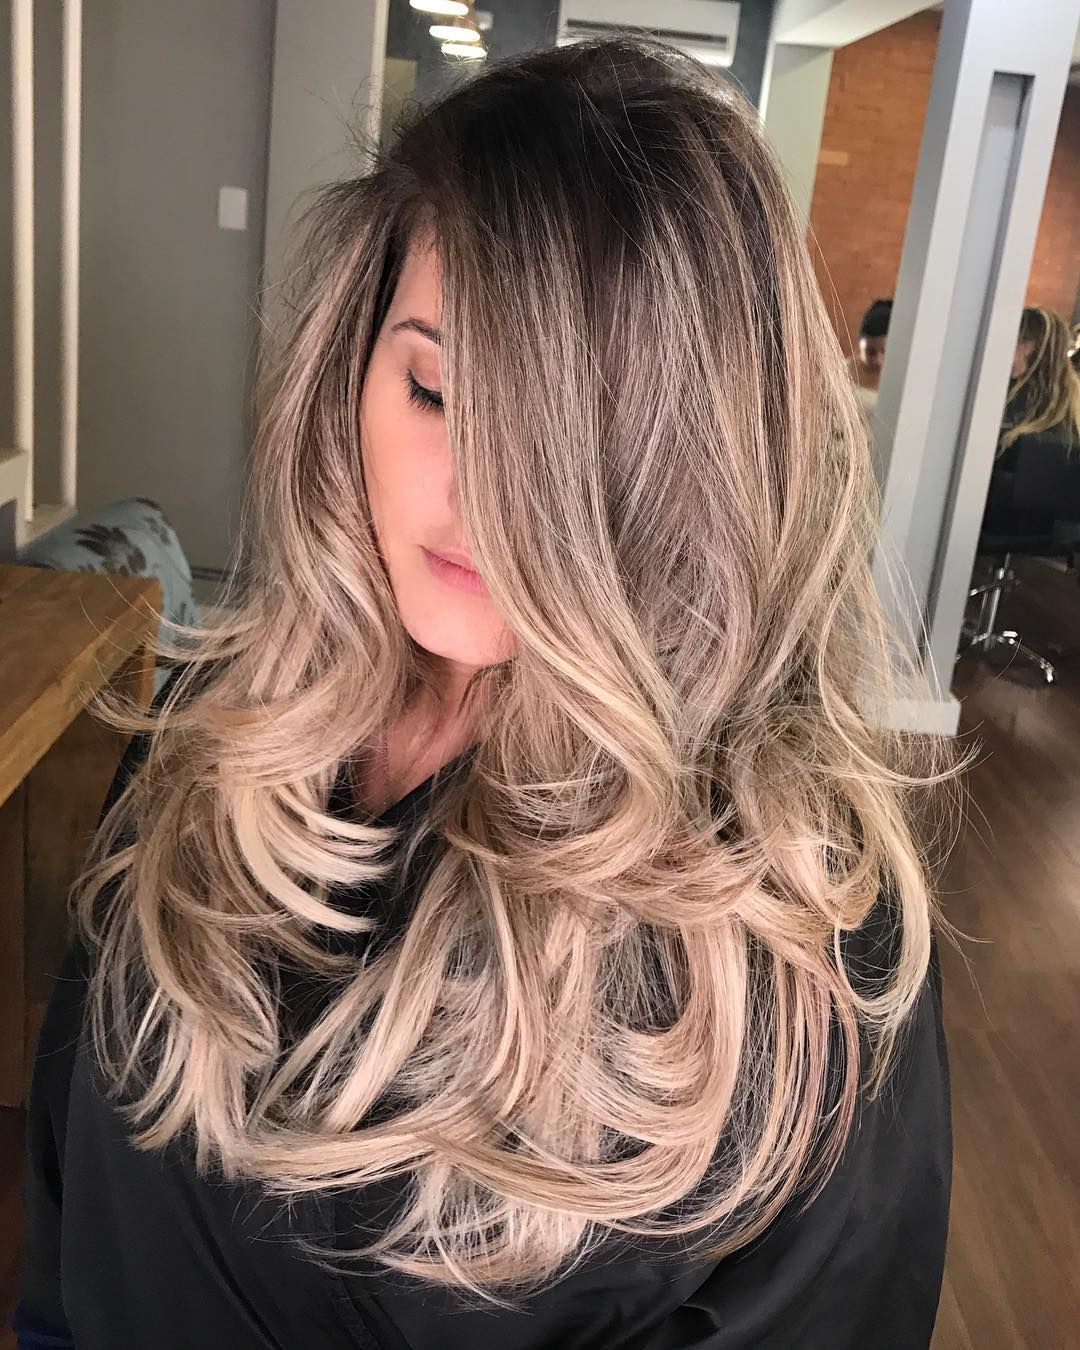 90 Best Long Layered Haircuts Hairstyles For Long Hair 2020 Long Layered Haircuts Layered Haircuts Long Layered Hair